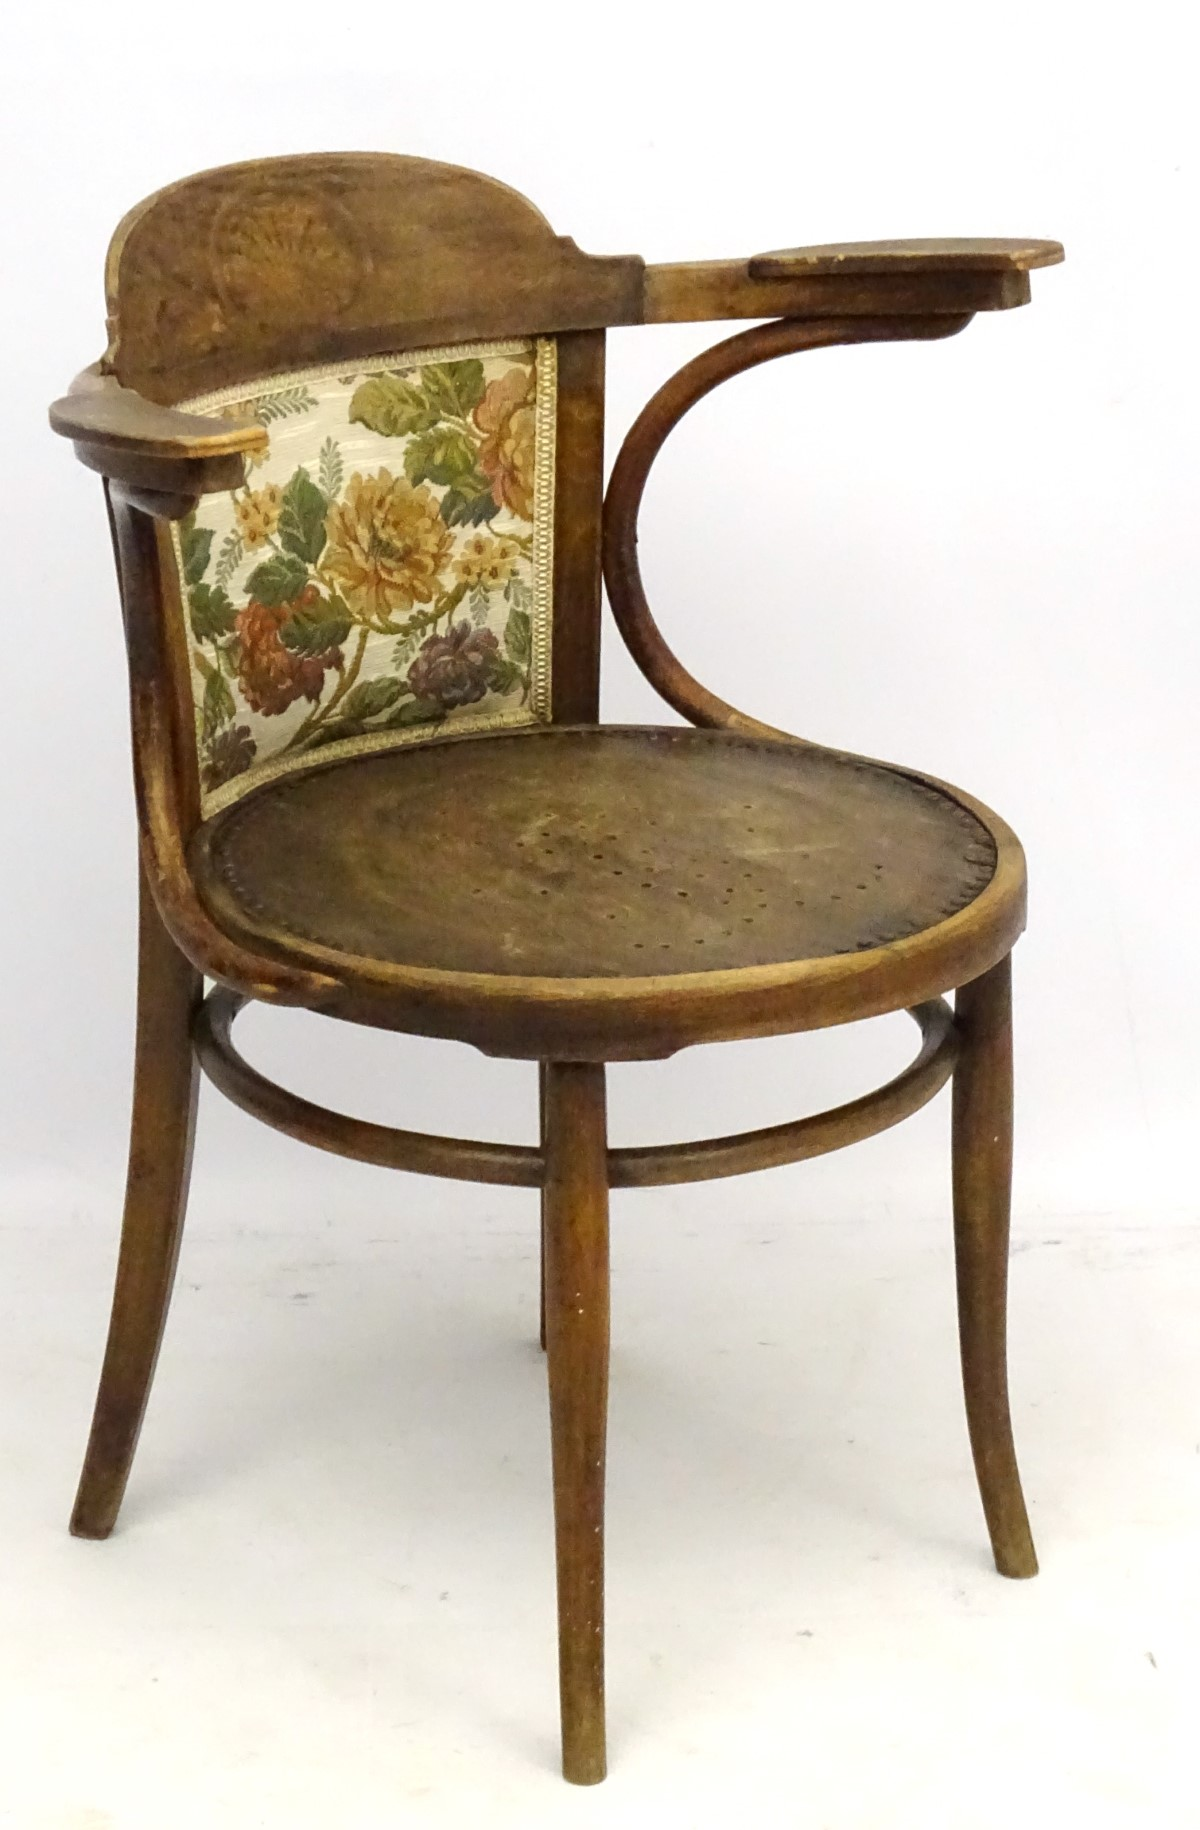 Lot 26 - An early 20thC Bentwood circular seated open arm Chair.